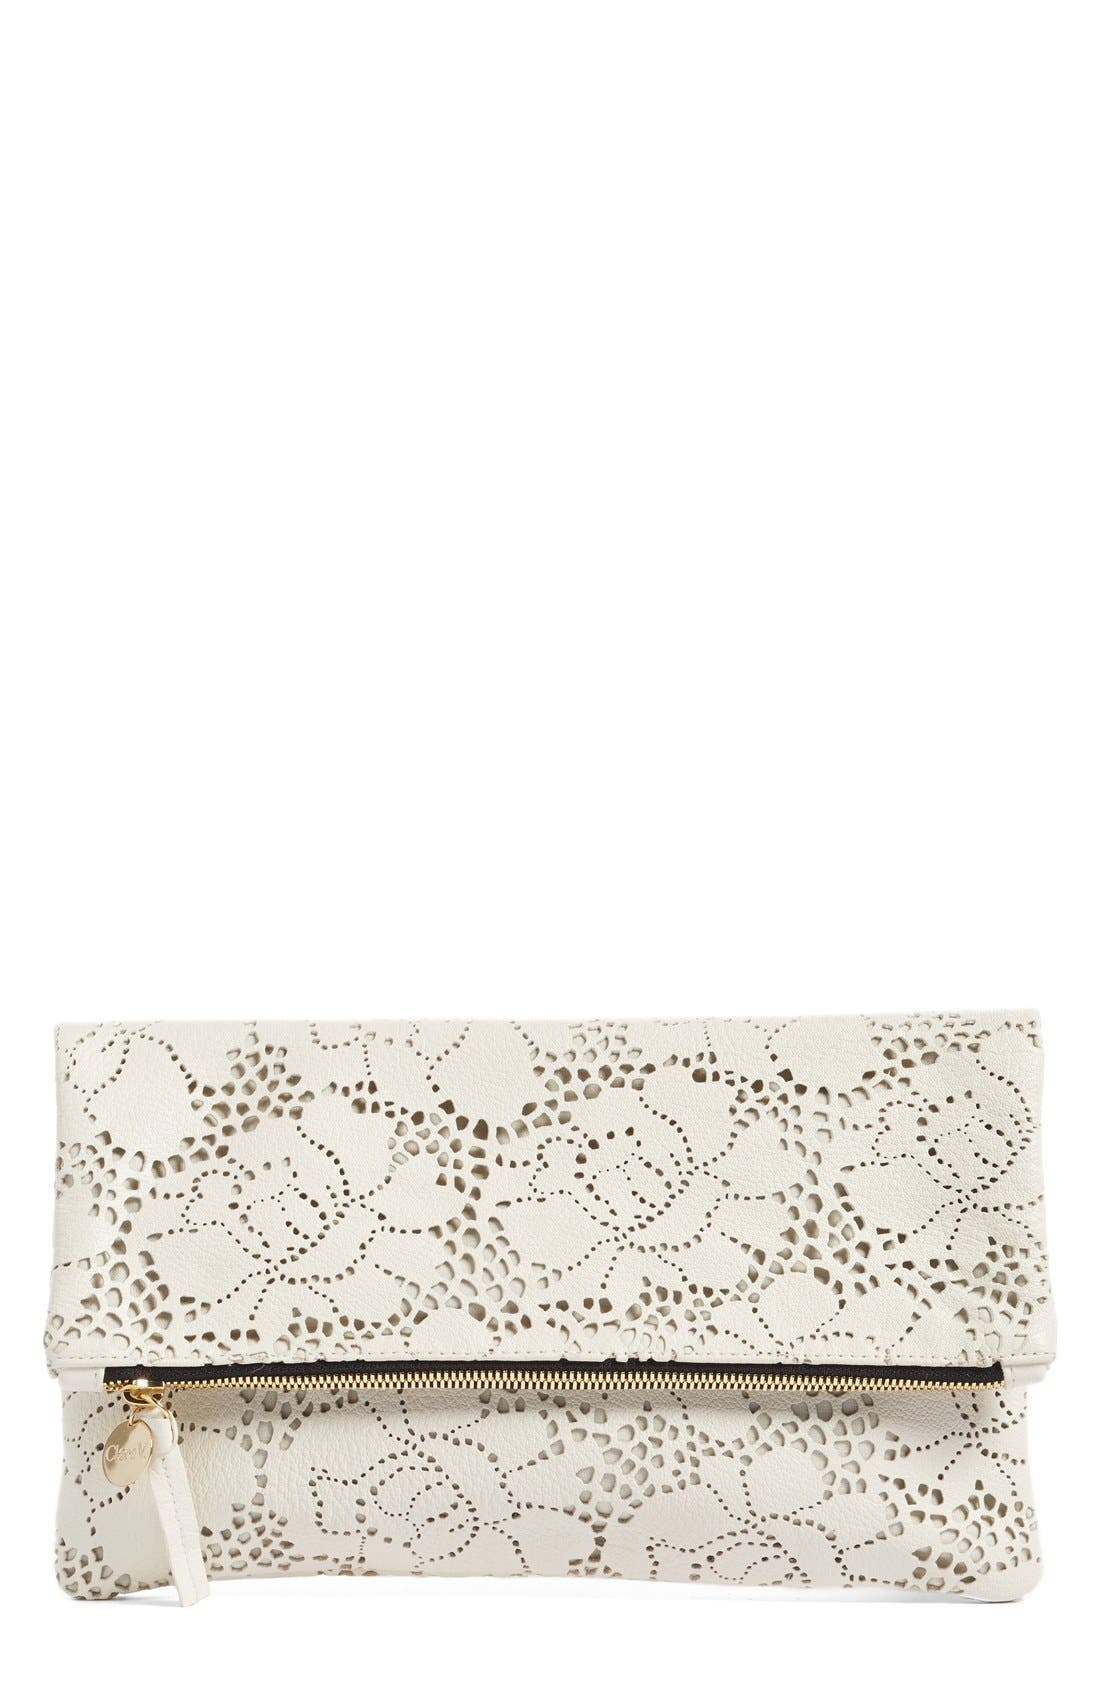 Main Image - Clare V. Leather Lace Foldover Clutch